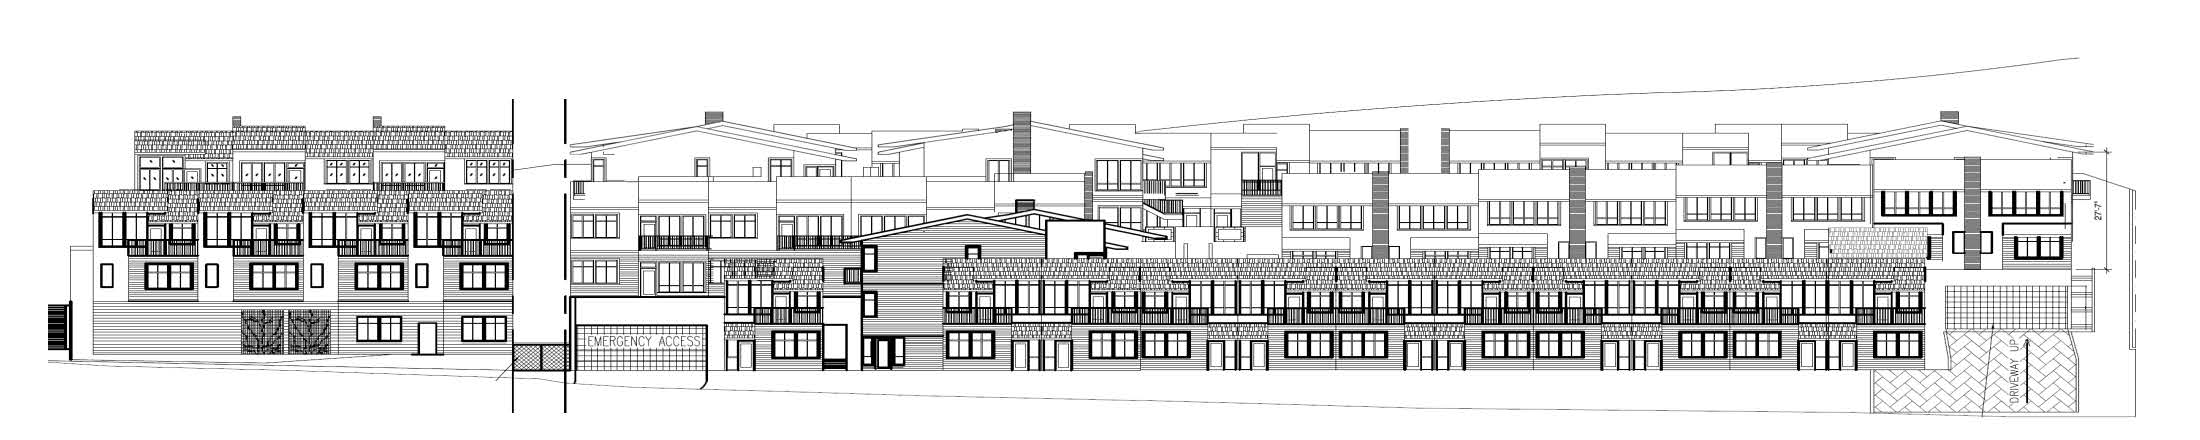 Everett Street Terraces Front Elevation